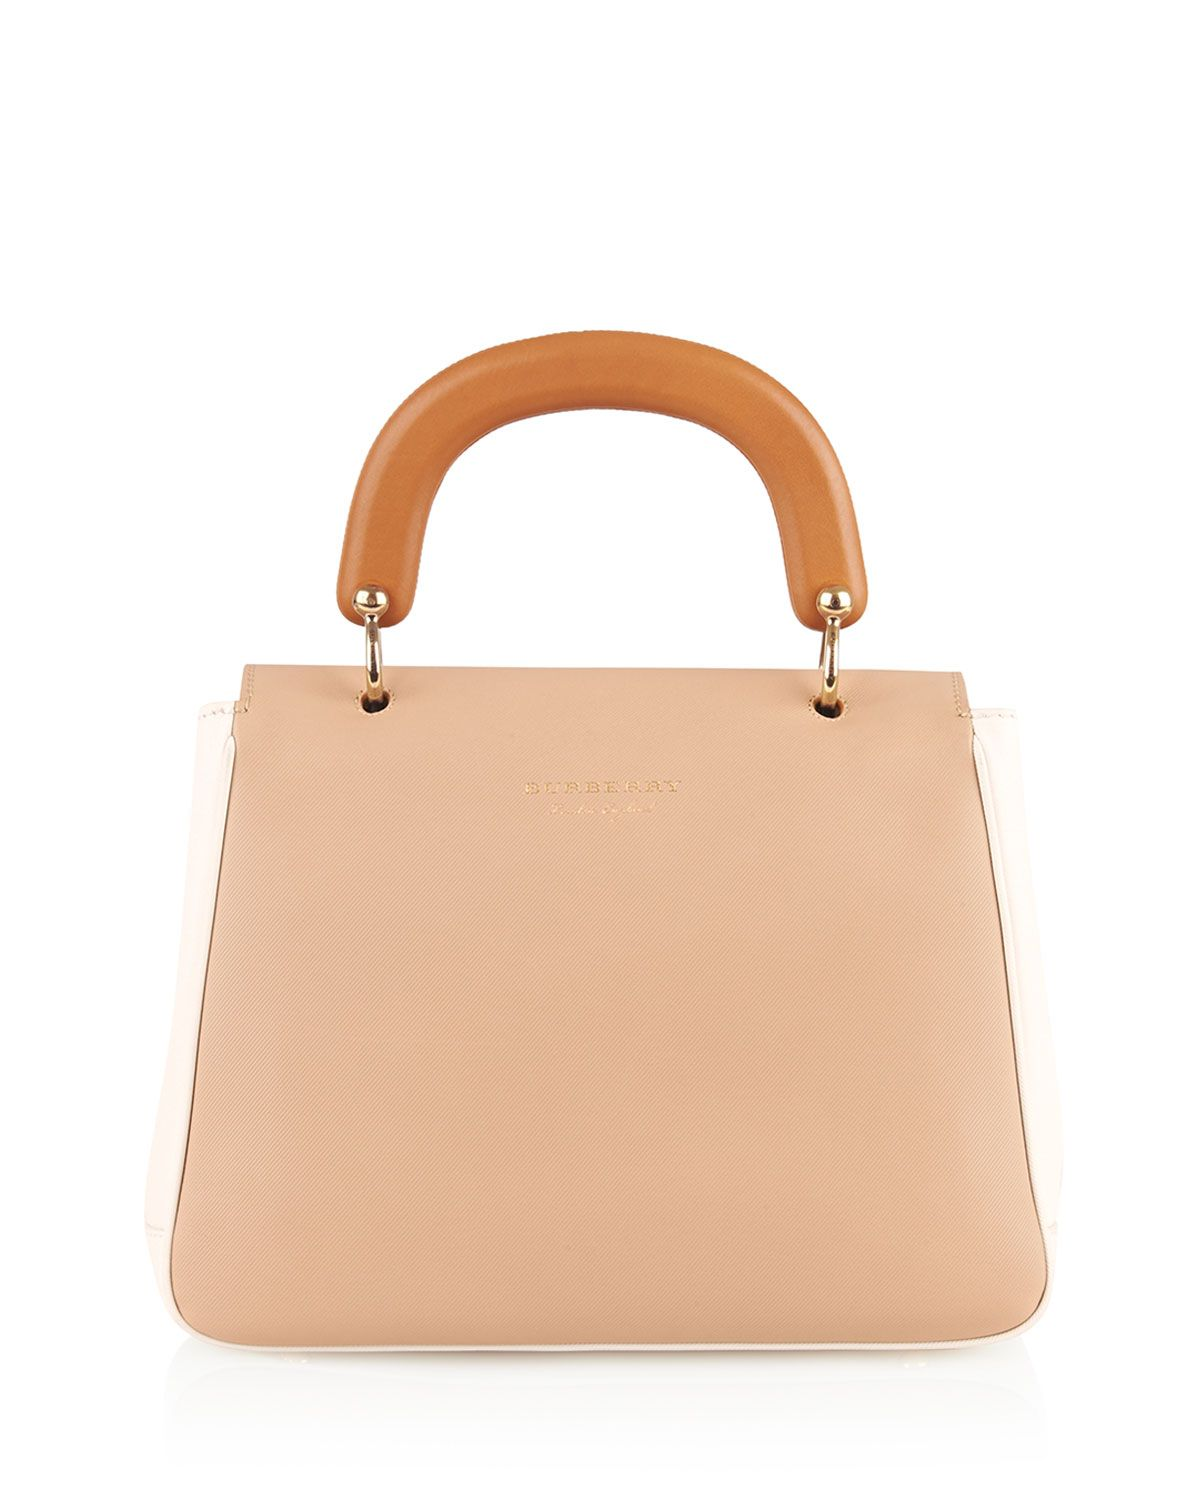 f7cce6783ff Burberry Trench Large Colorblock Leather Top-Handle Satchel Bag, Ivory